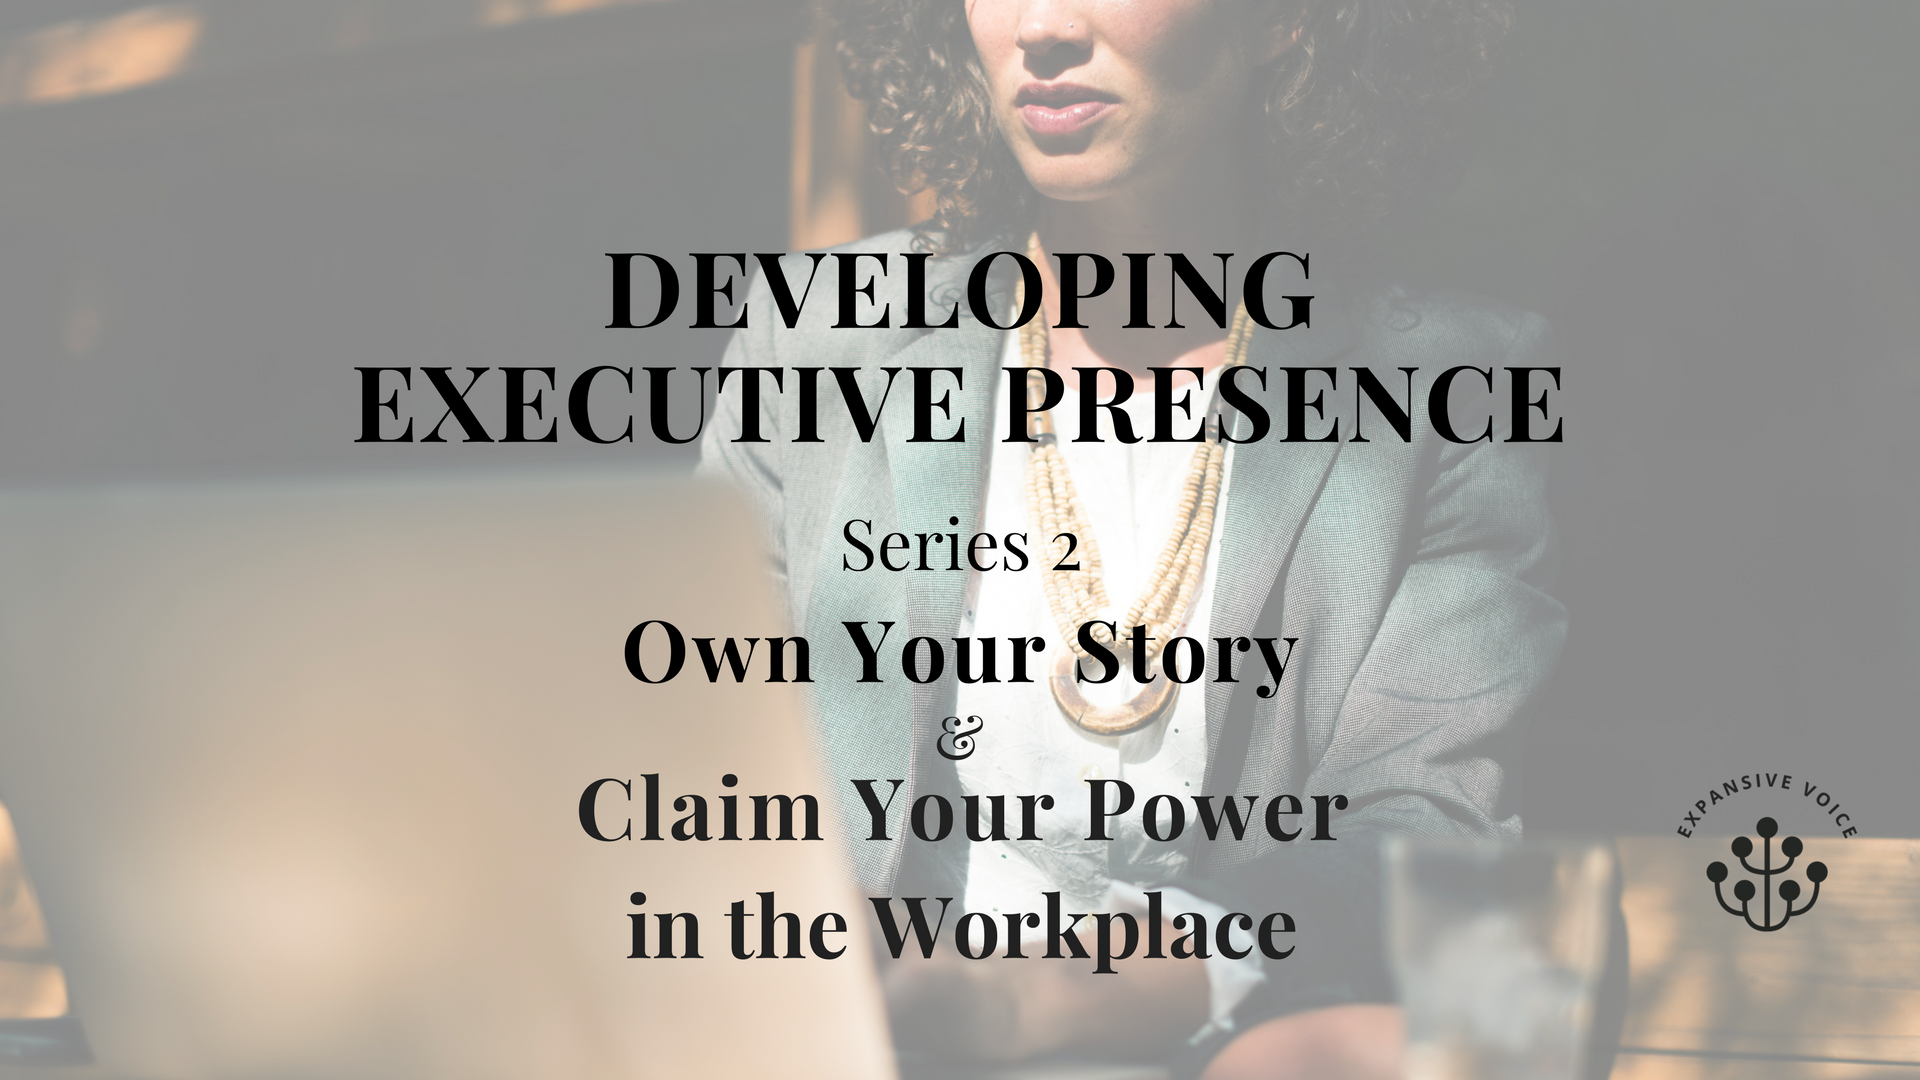 Developing Executive Presence Series 2.png